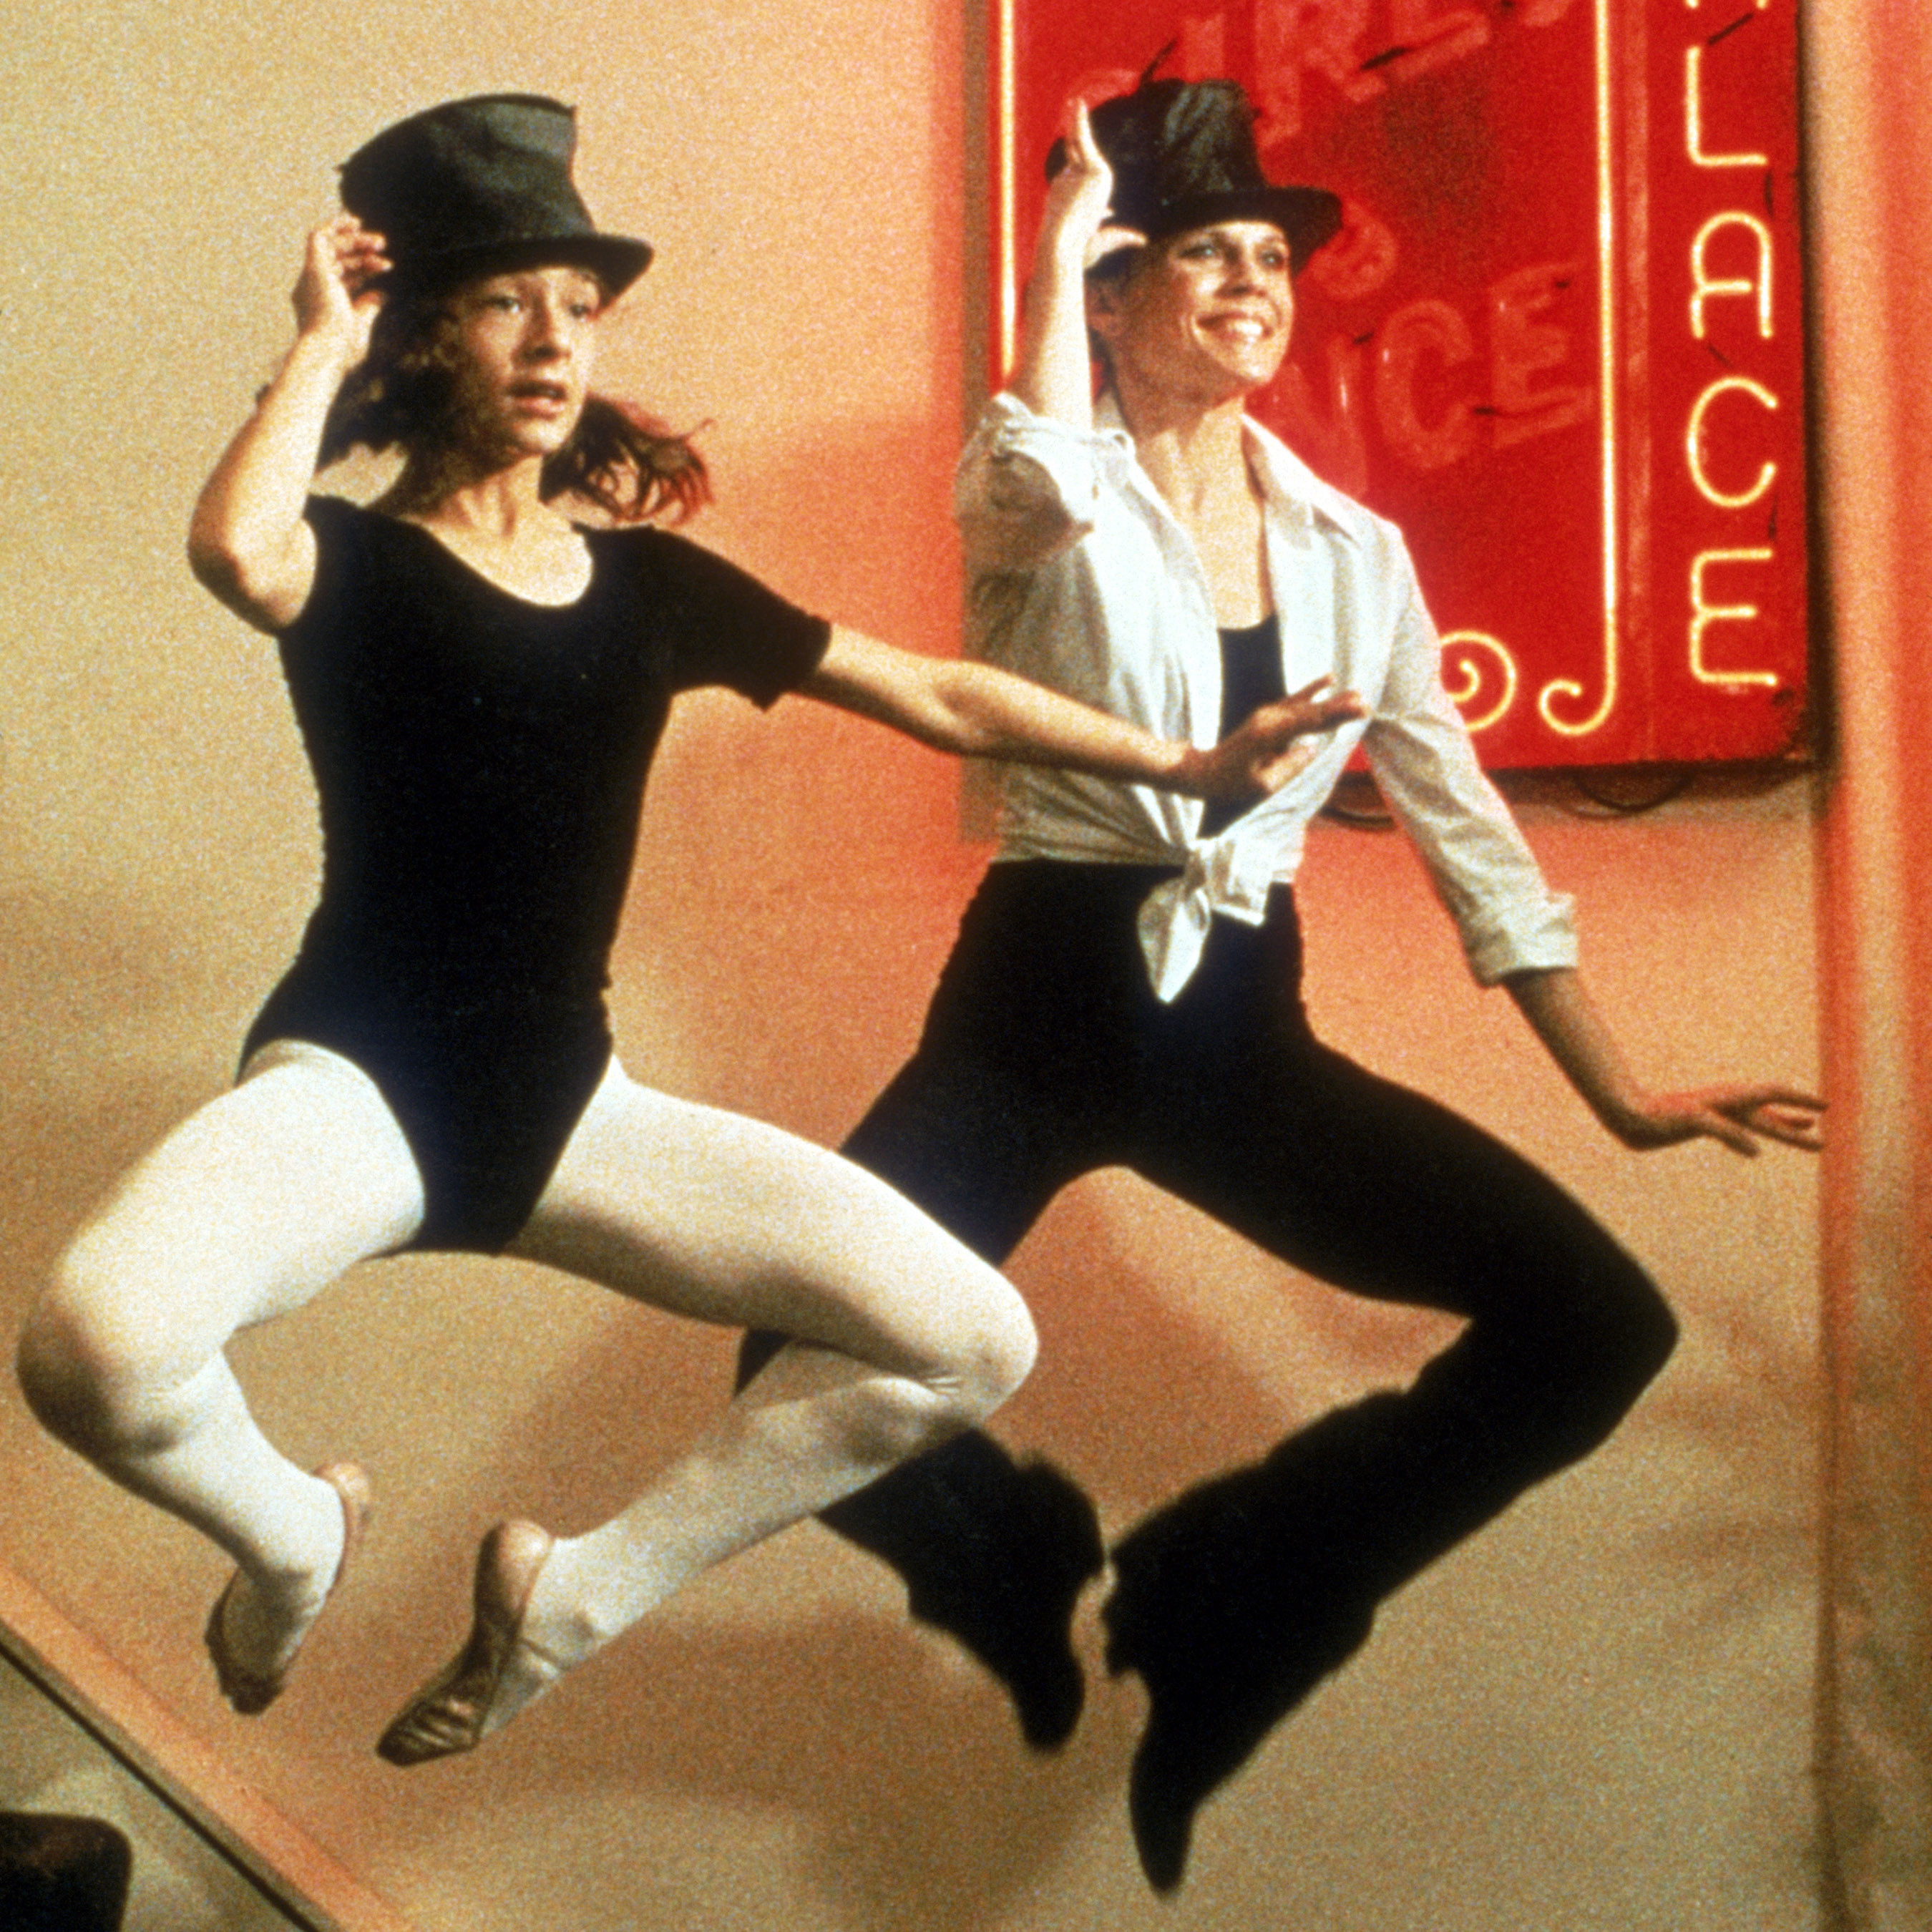 the life and contributions of bob fosse to jazz dance In 2007, fosse was inducted posthumously into the national museum of dance and hall of fame, and a section of paulina street in chicago was named bob fosse way view the full biography filmography close complete filmography.